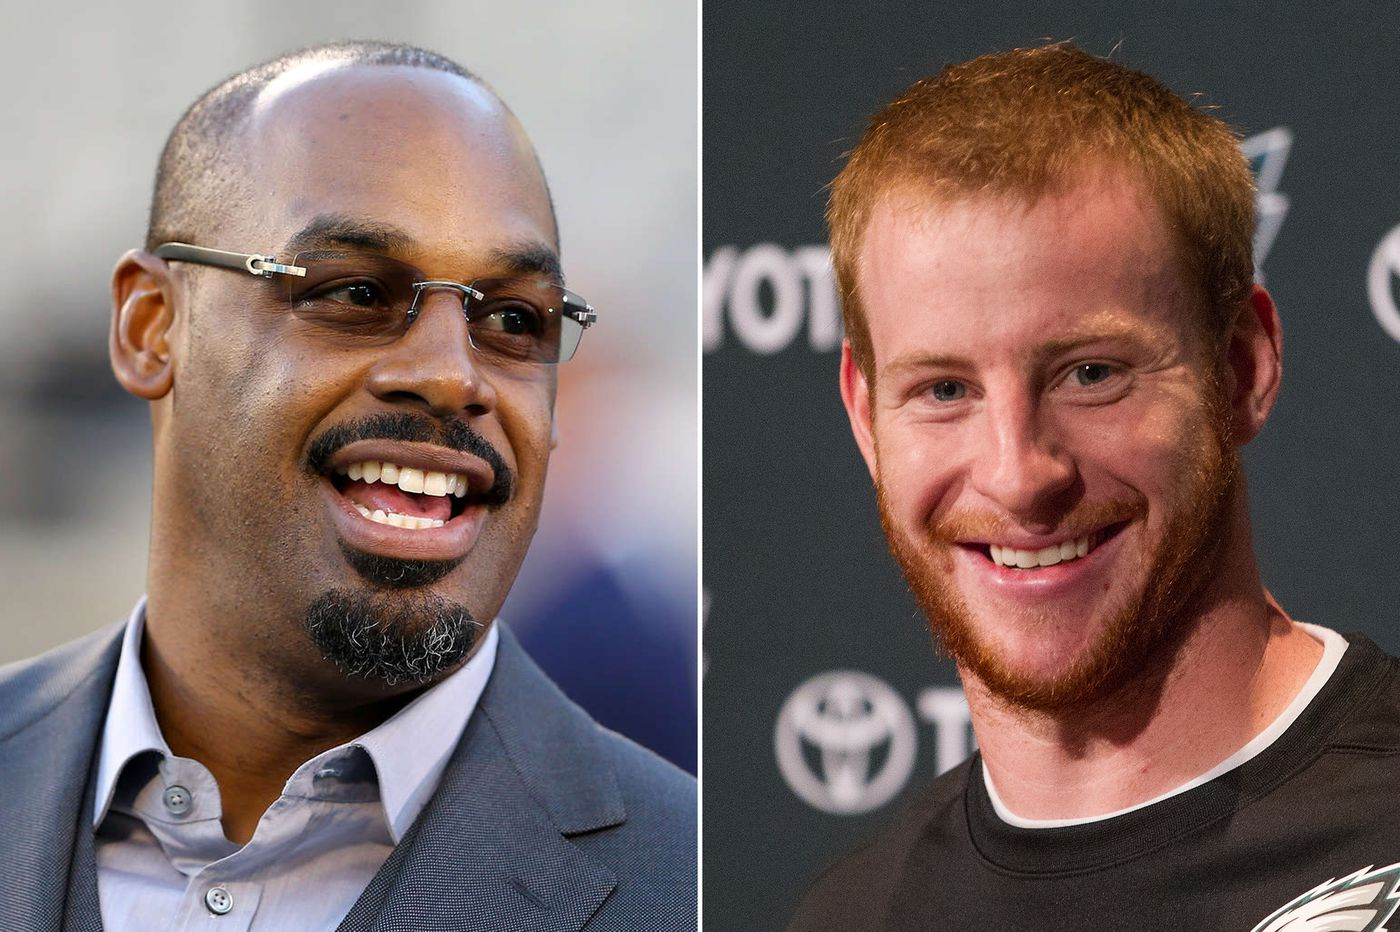 Donovan McNabb said it the wrong way, but he wasn't wrong about the Eagles | Marcus Hayes